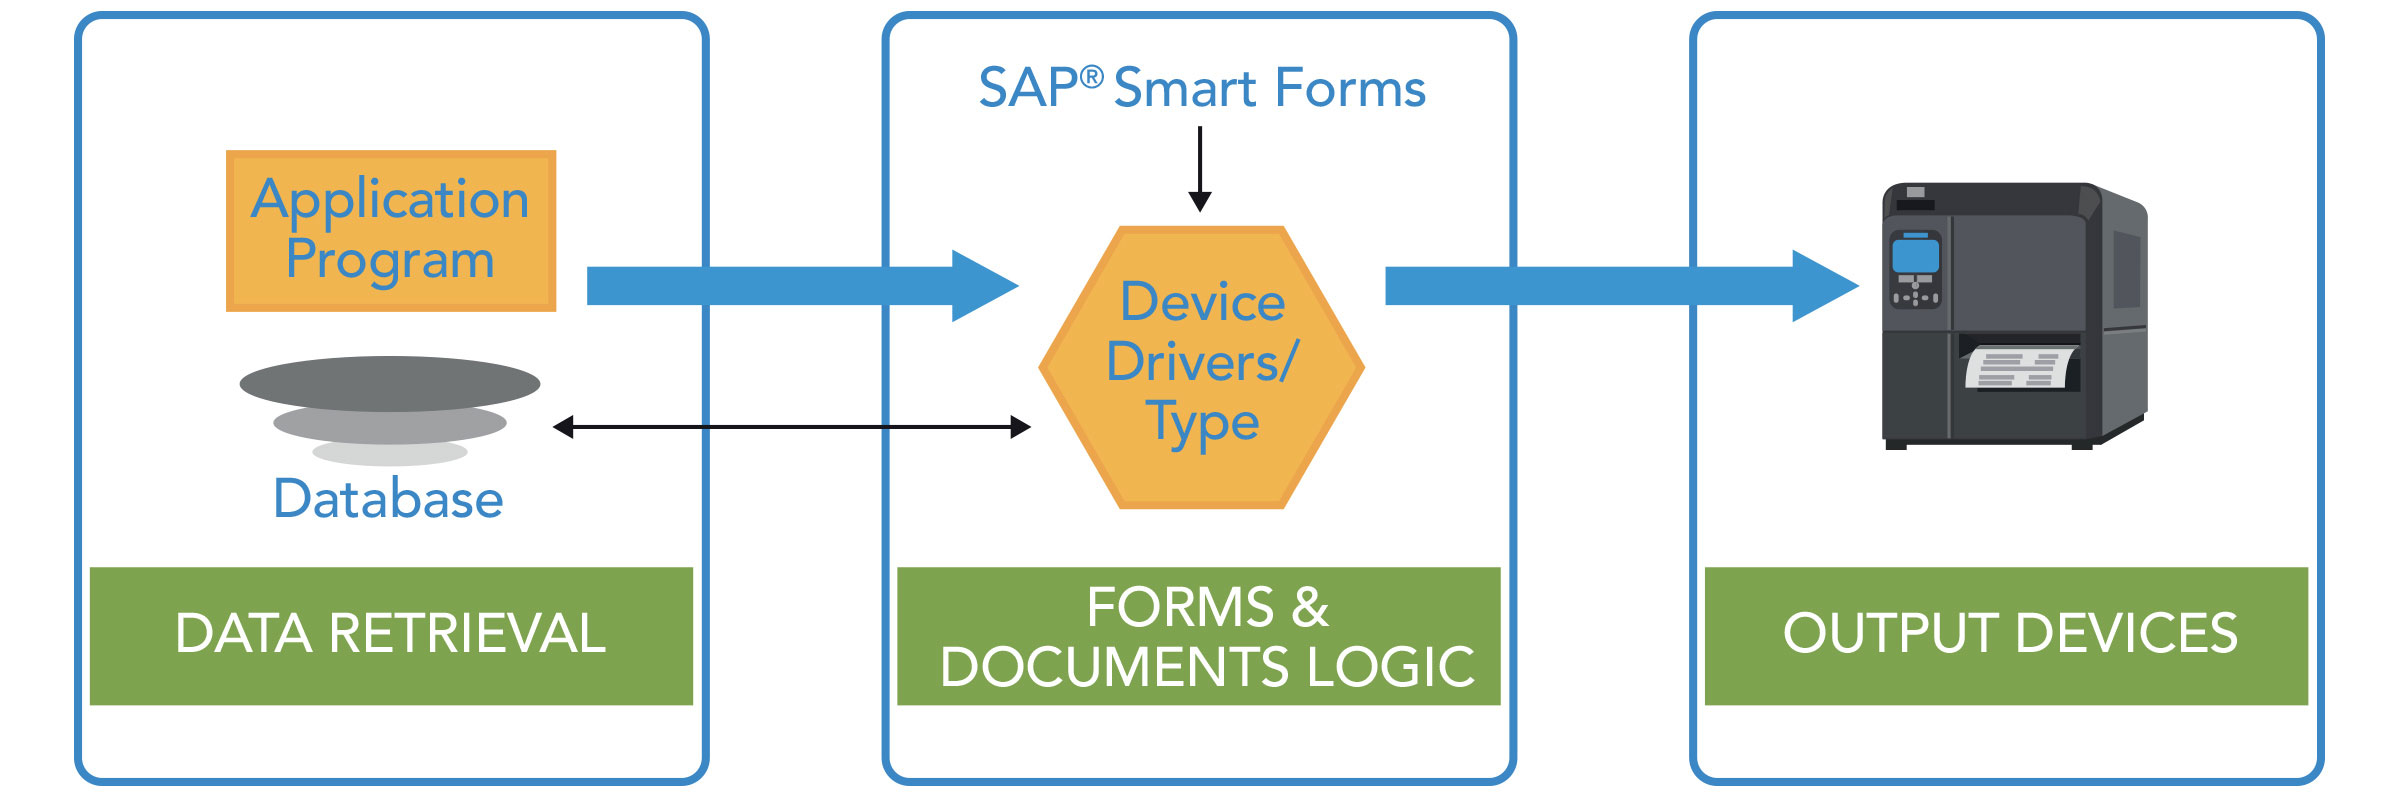 Data Retrieval > Forms & Documents Logic > Output Devices